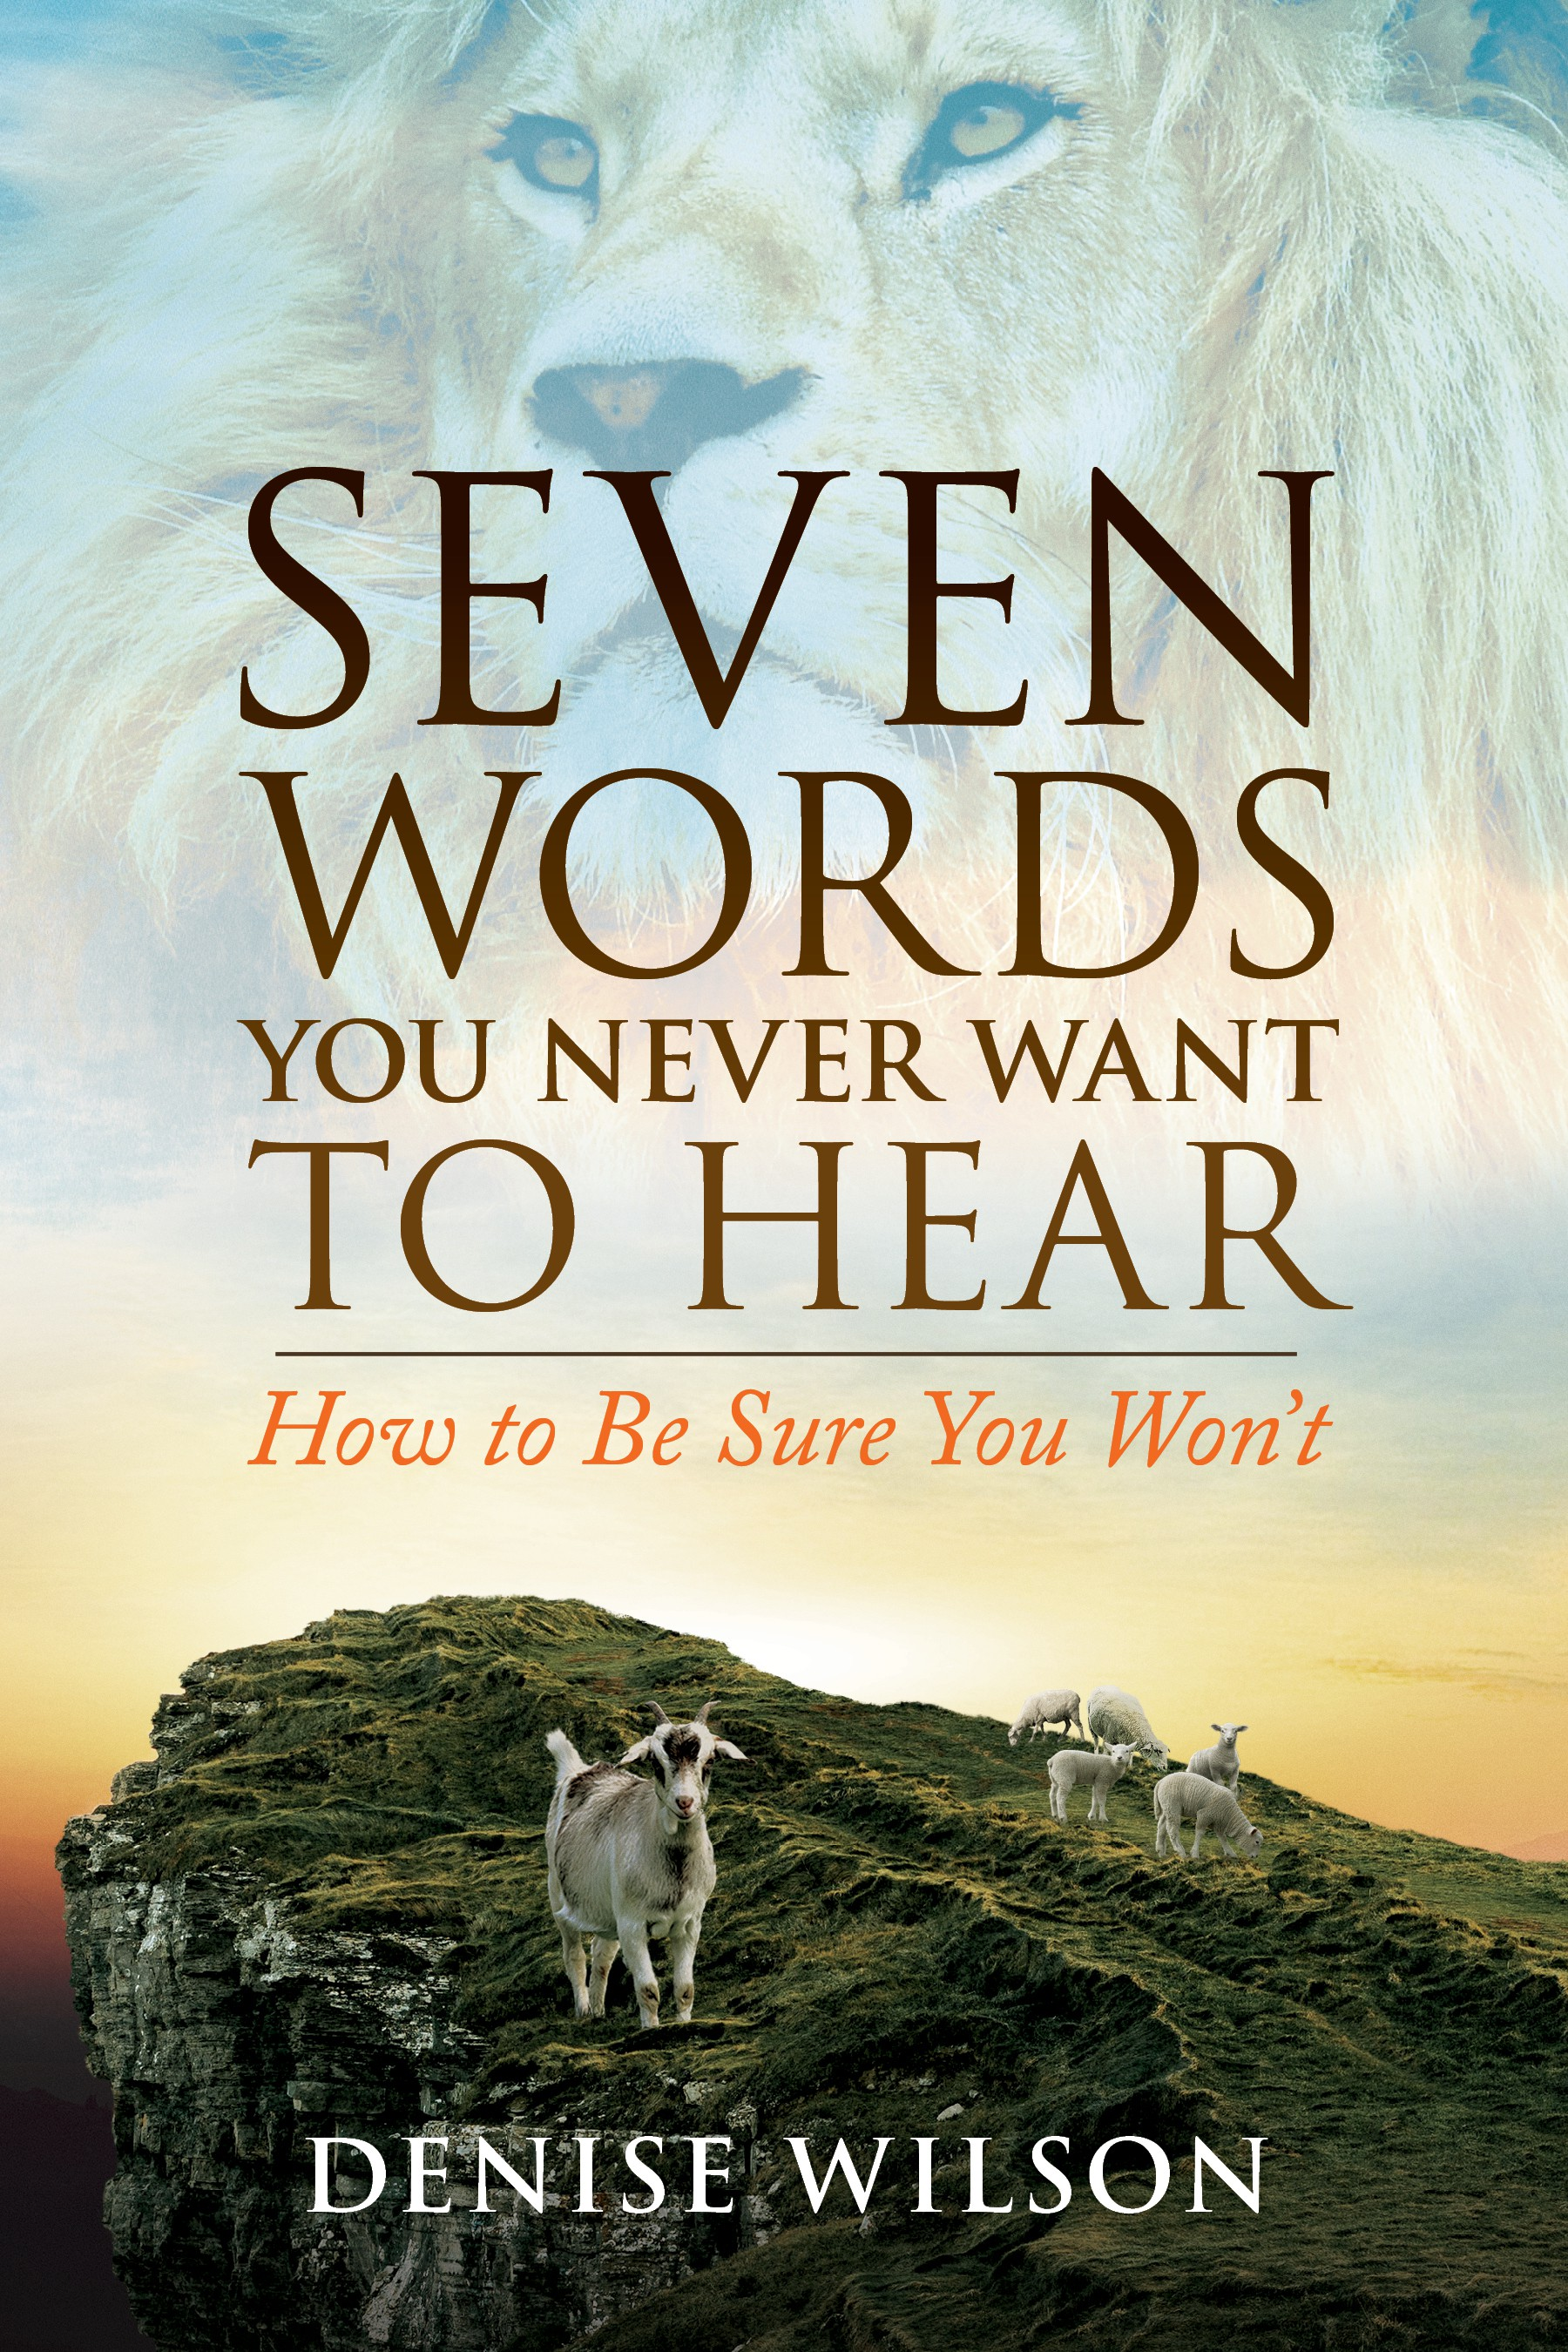 TITLE: Seven Words You Never Want to Hear - Must have a cover that makes readers want to open book.